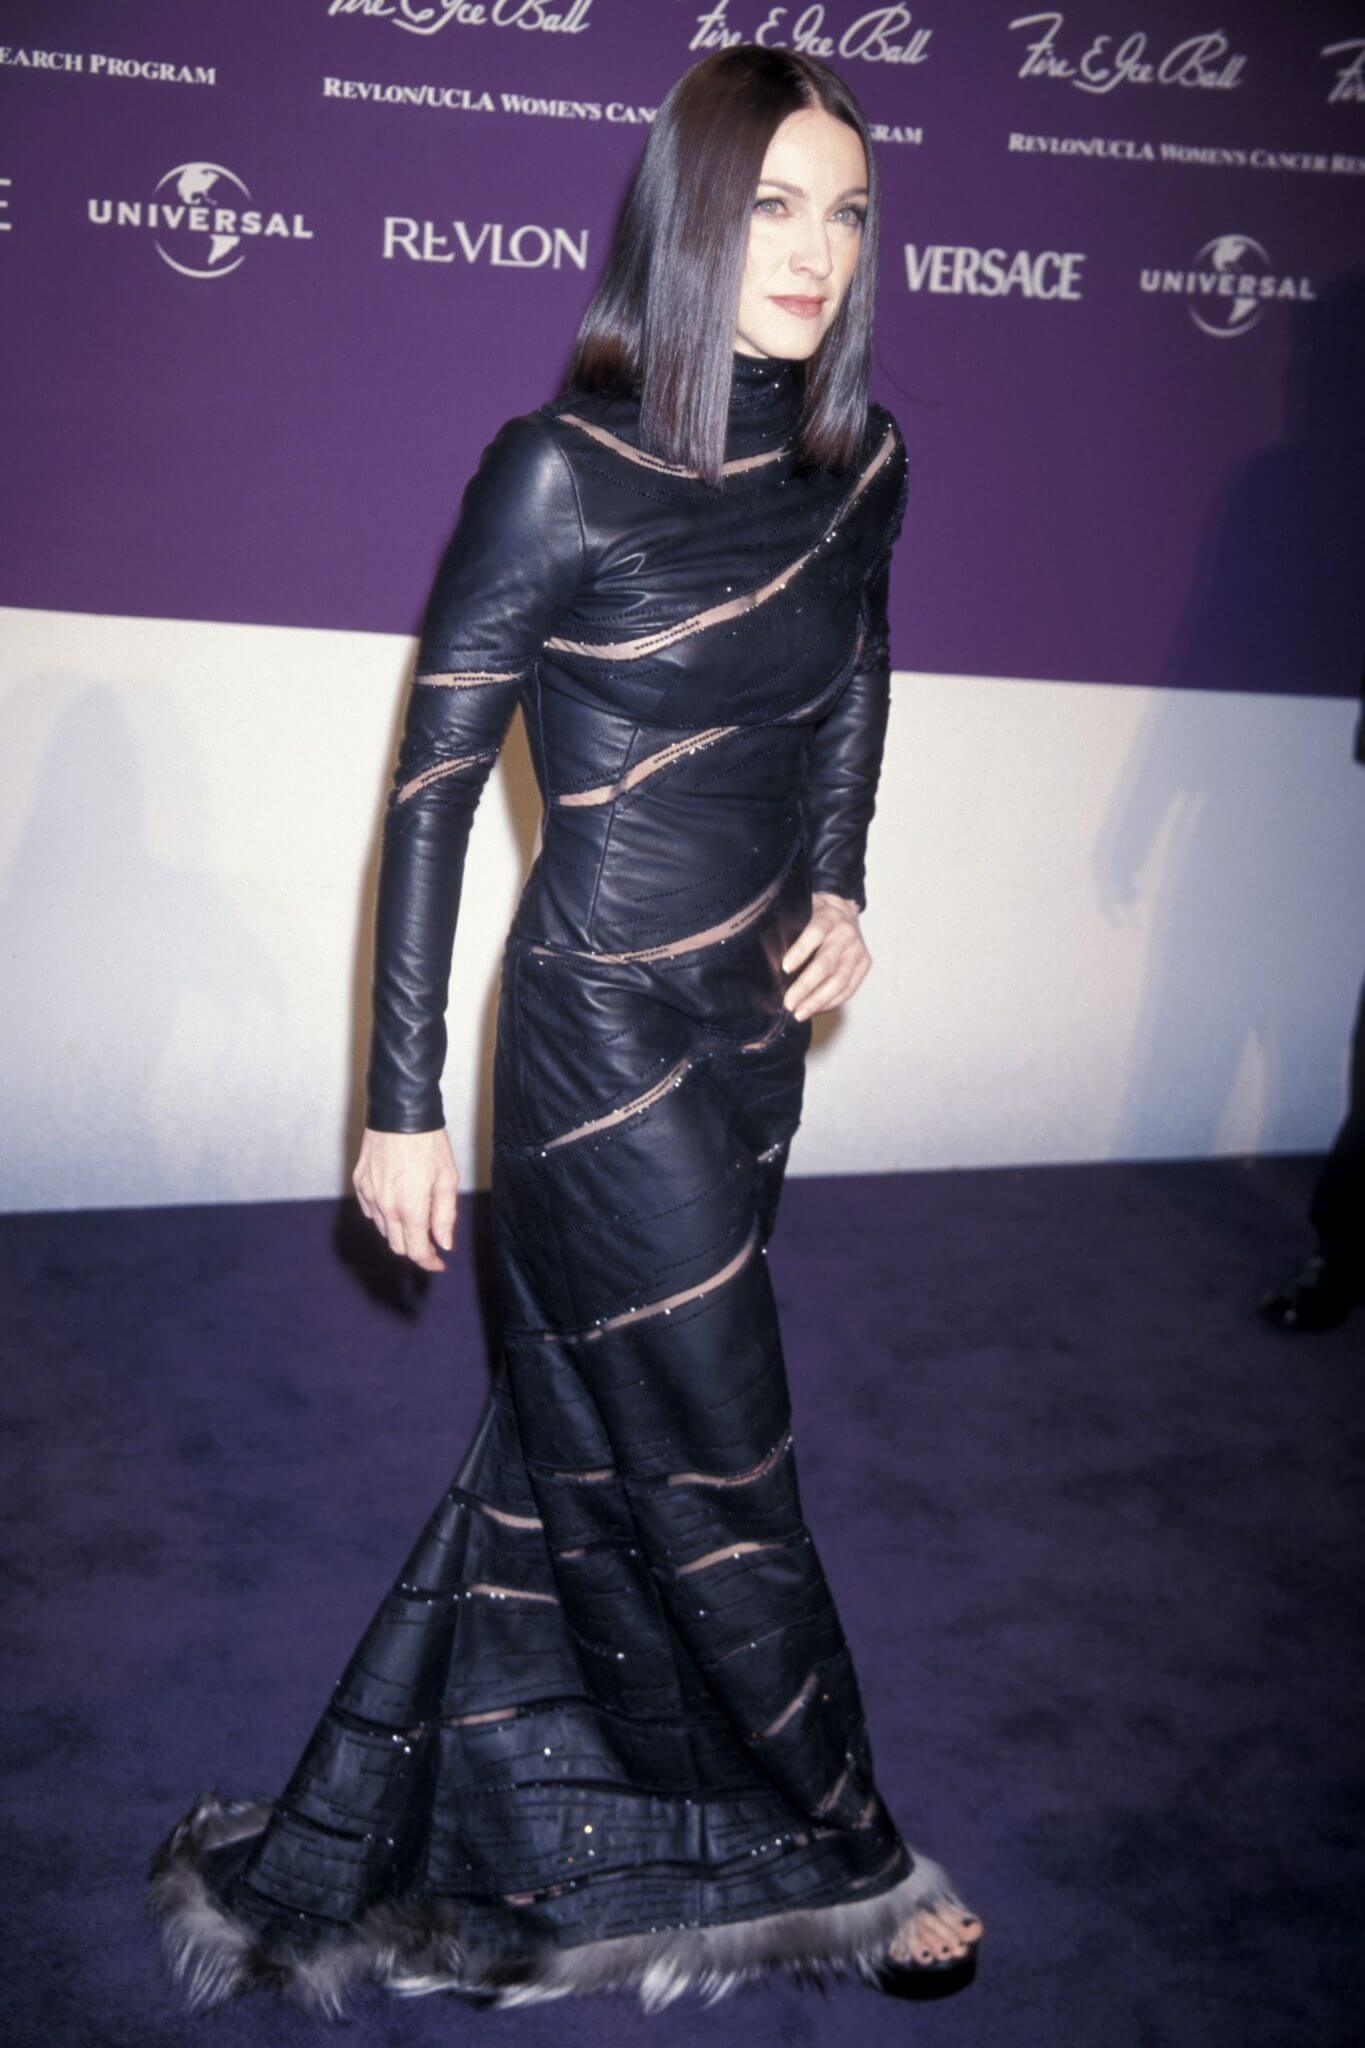 Madonna en el Fire & Ice Ball de 1998. Fotografía: Getty Images